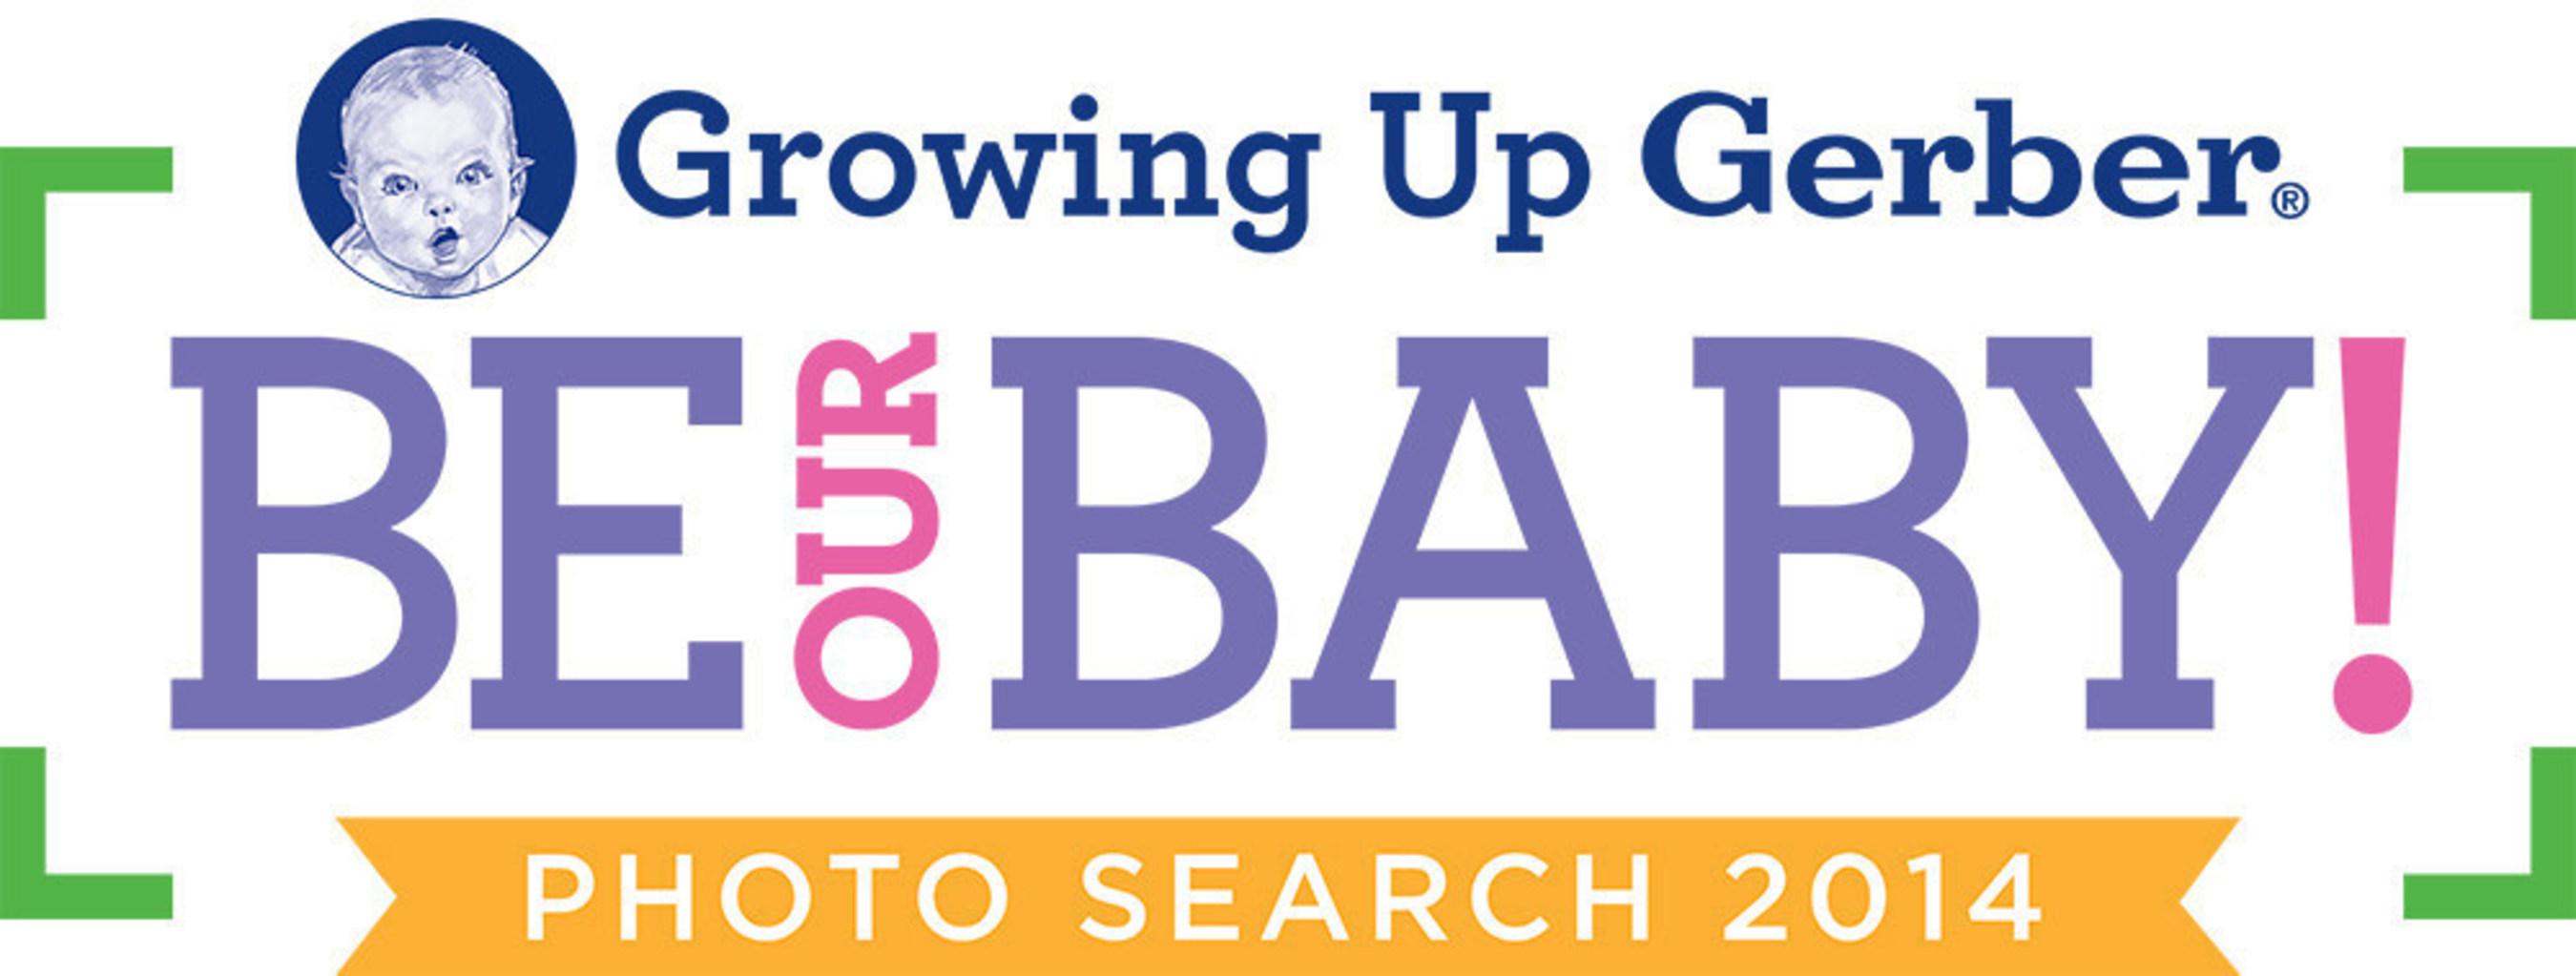 Gerber Photo Search 2014